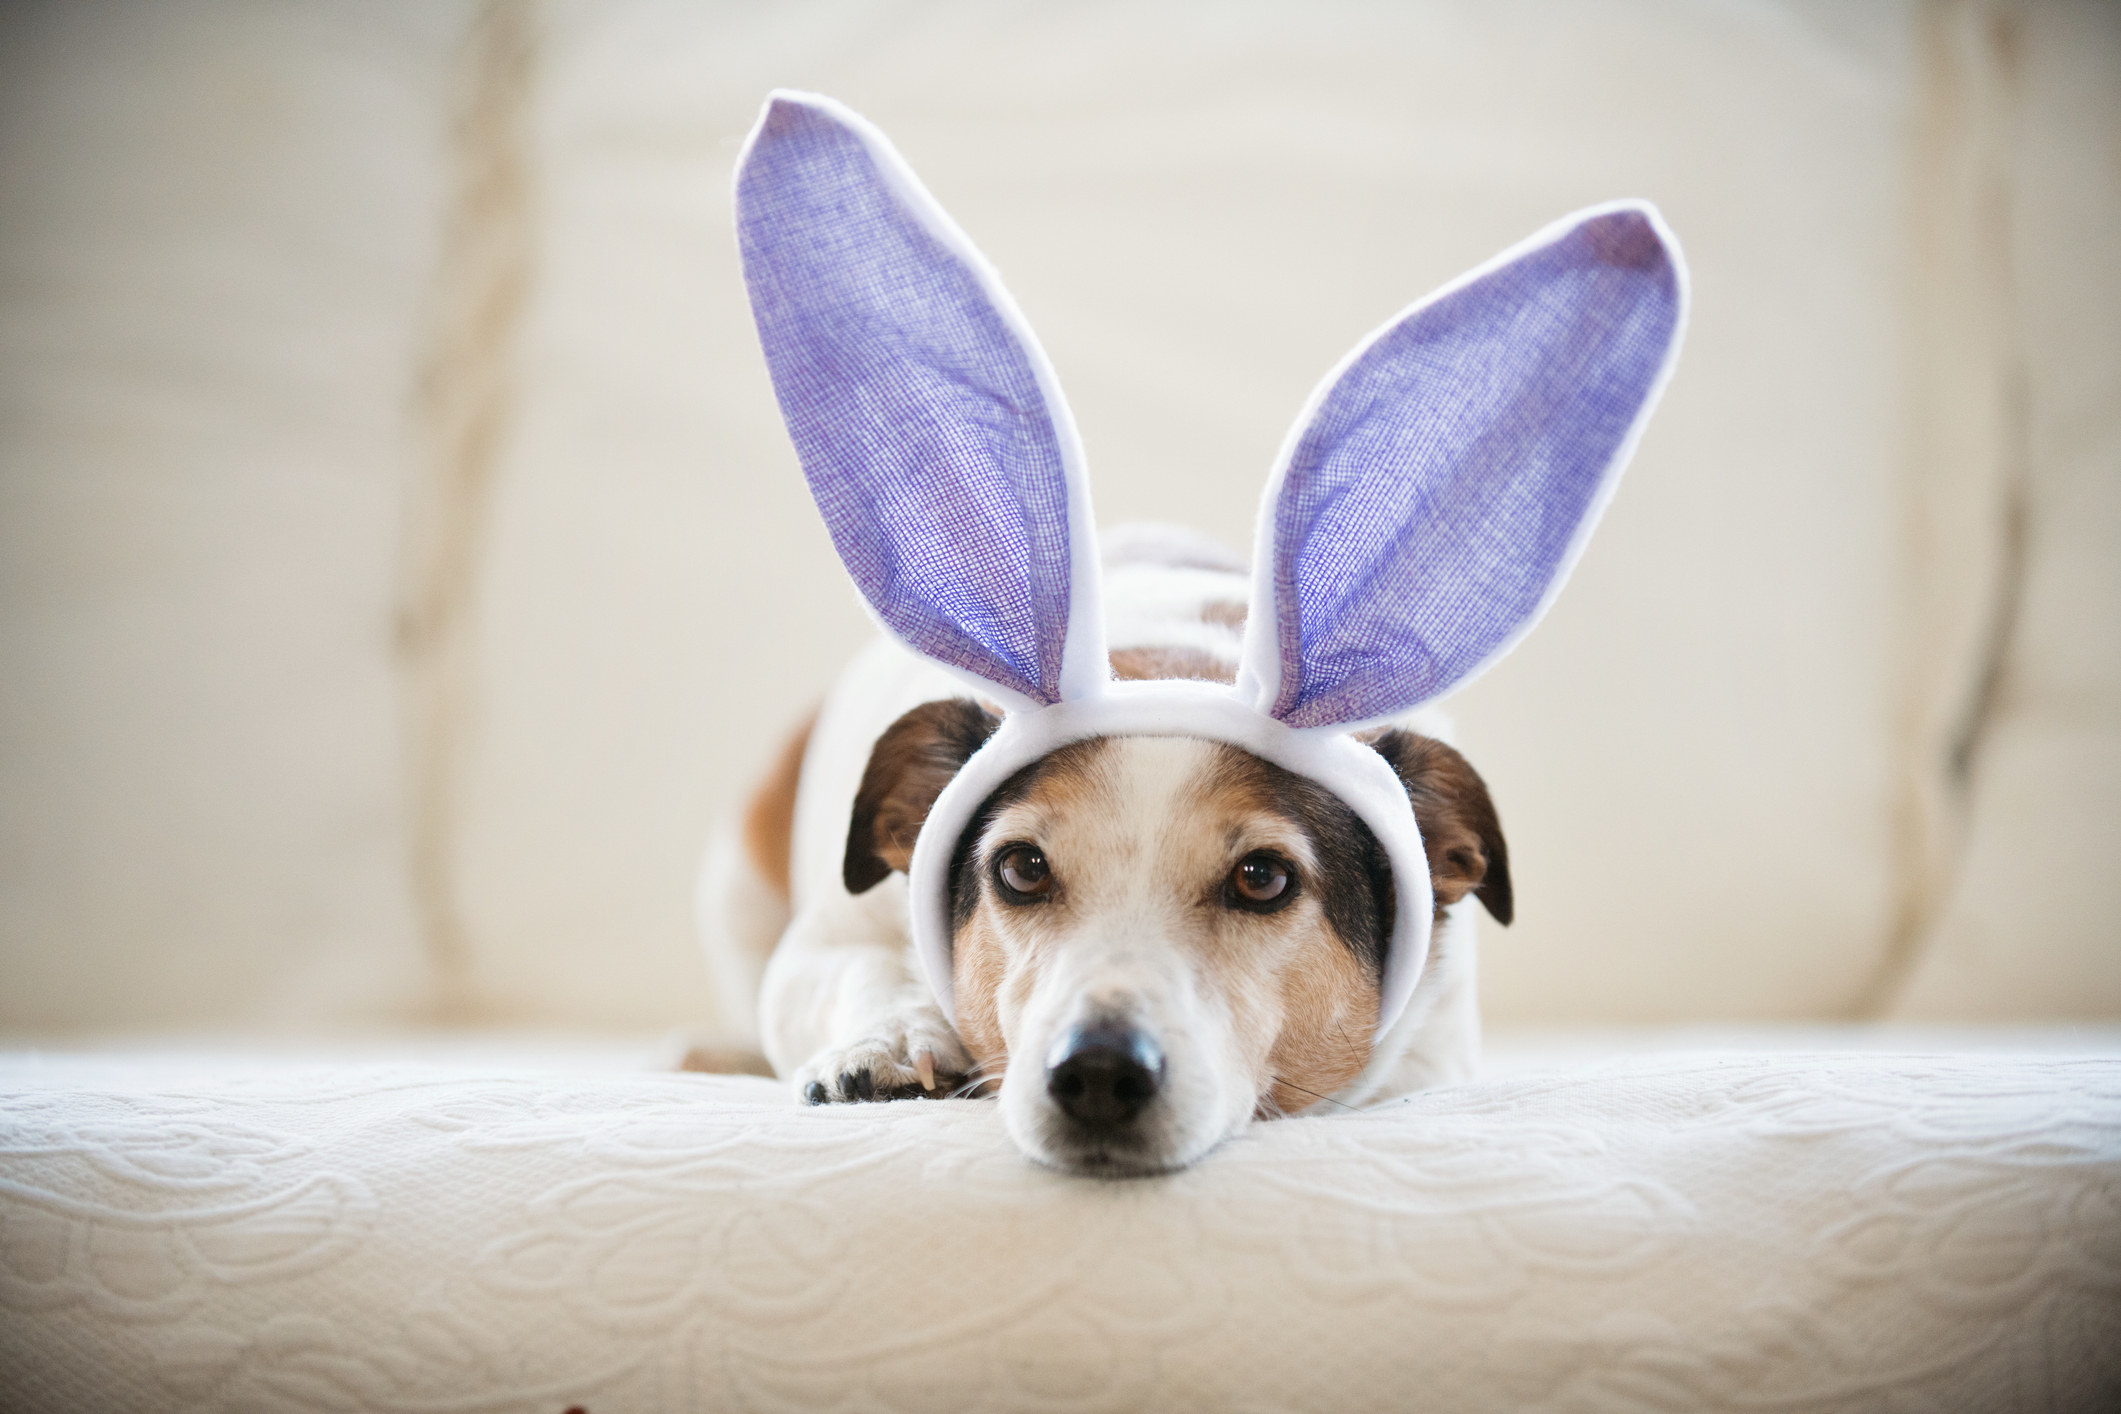 A small dog with dark ears lying on a couch wearing big bunny ears